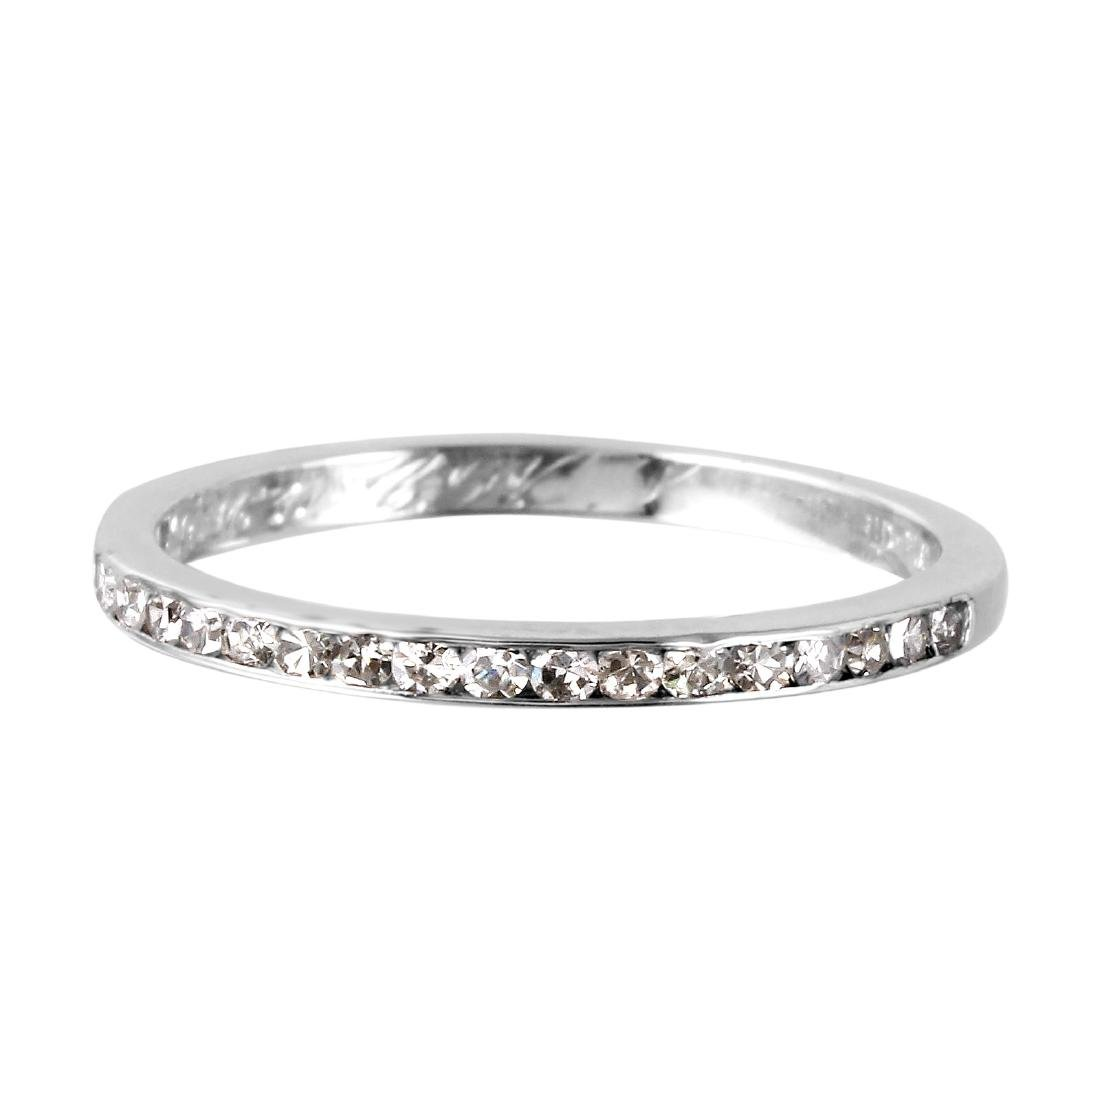 Platinum Diamond Wedding Band - 3